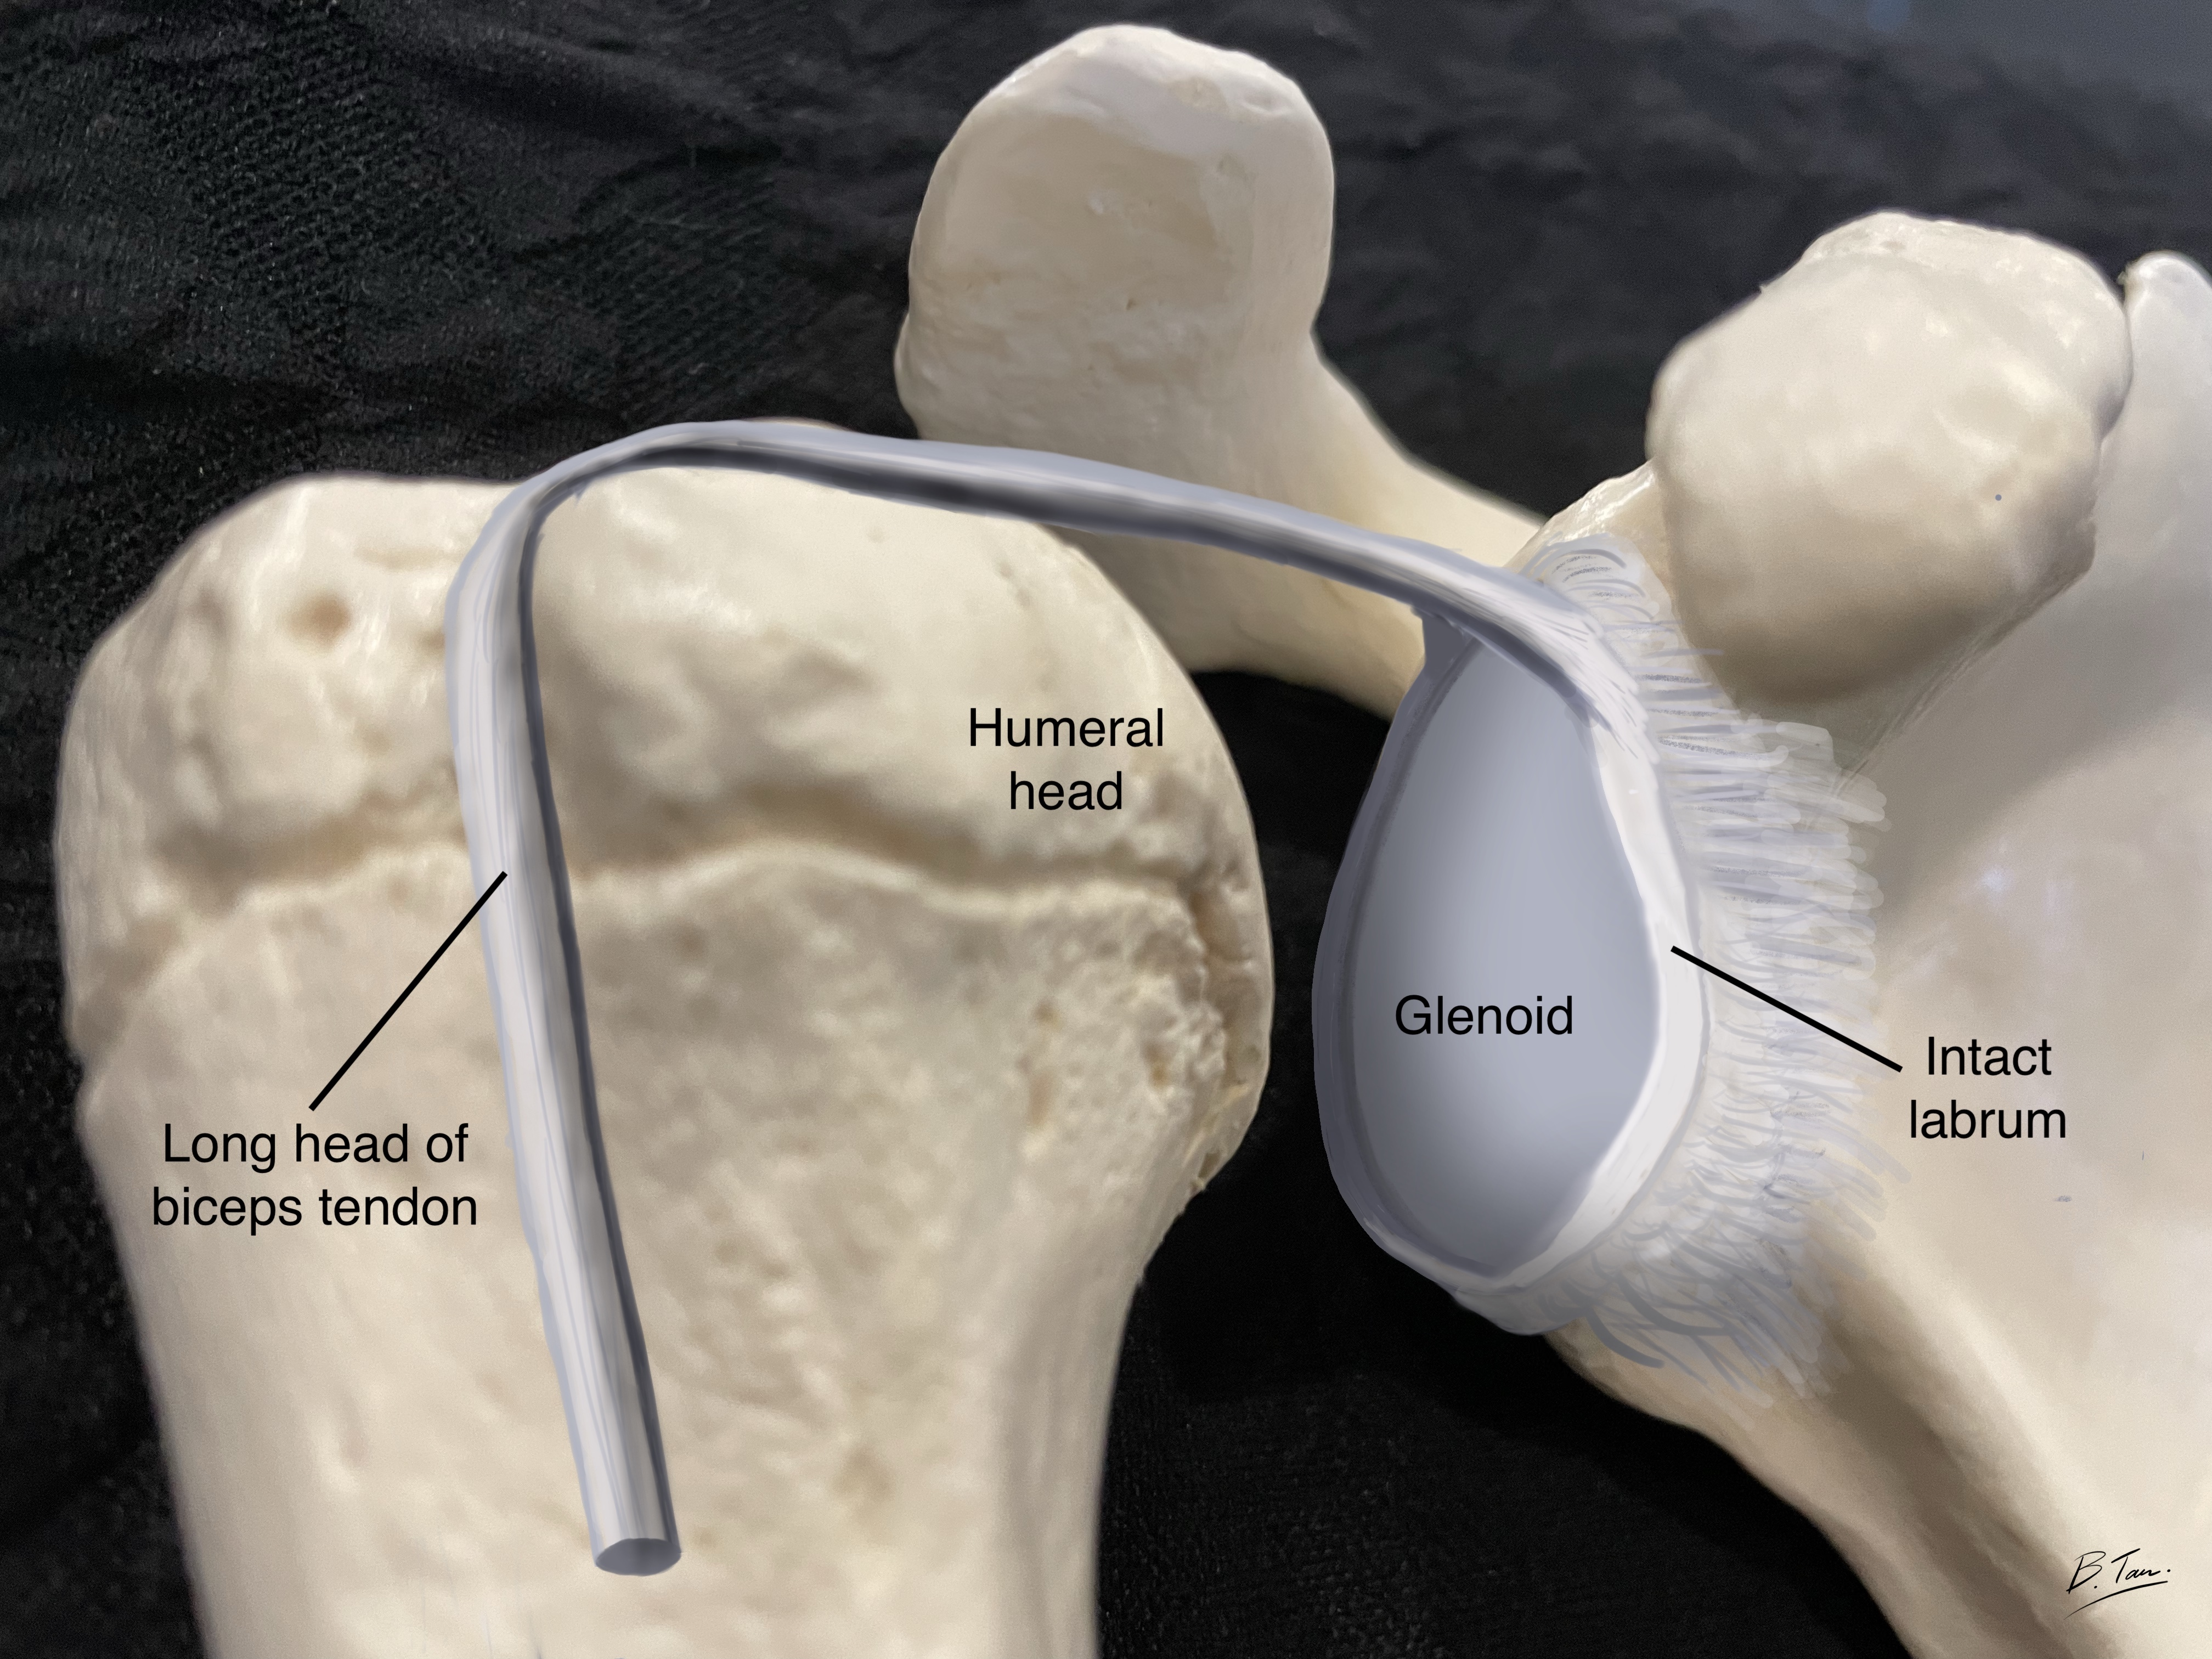 Shoulder joint with intact labrum